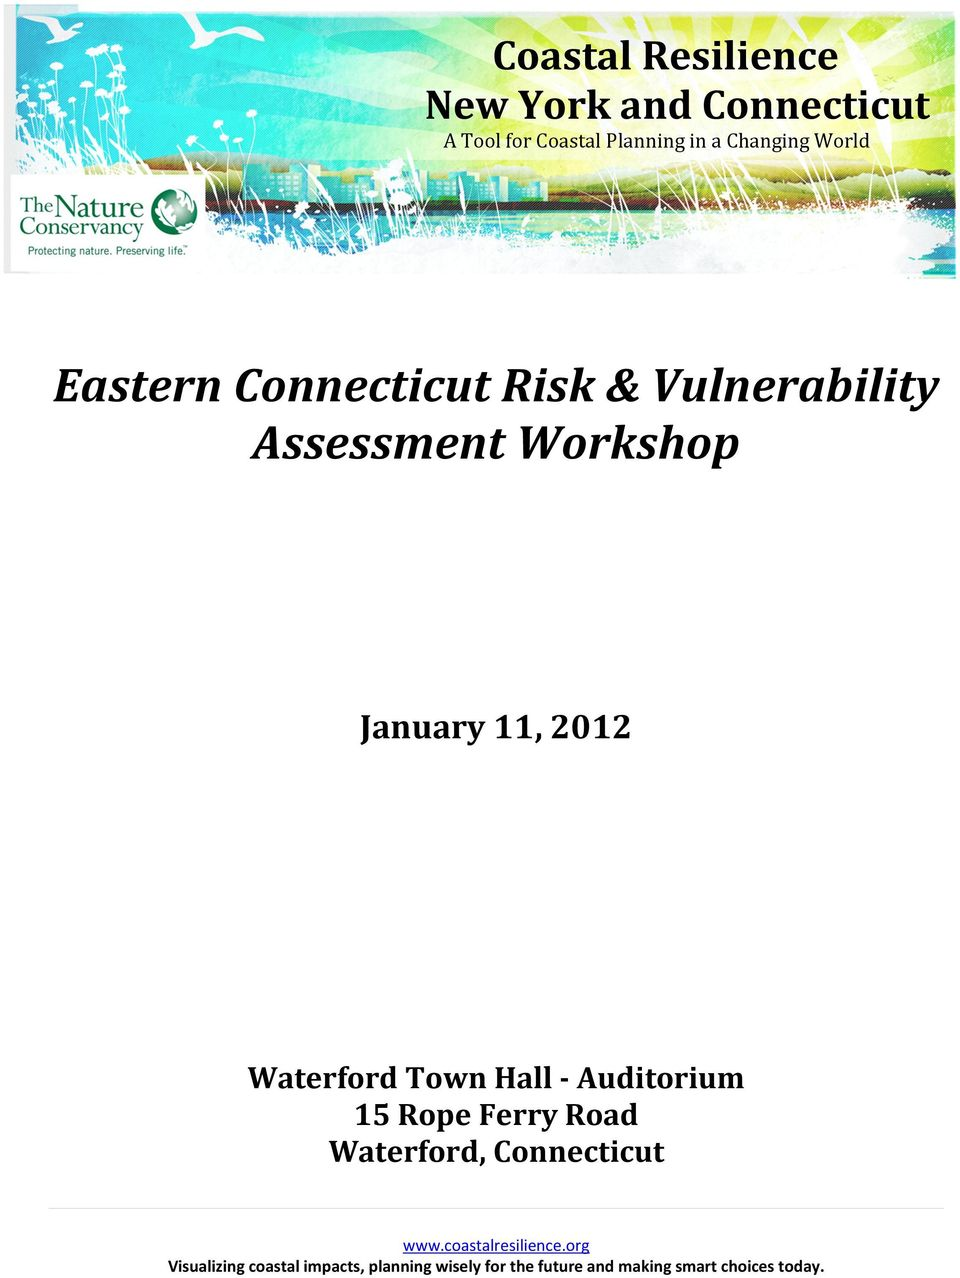 Risk & Vulnerability Assessment Workshop January 11, 2012